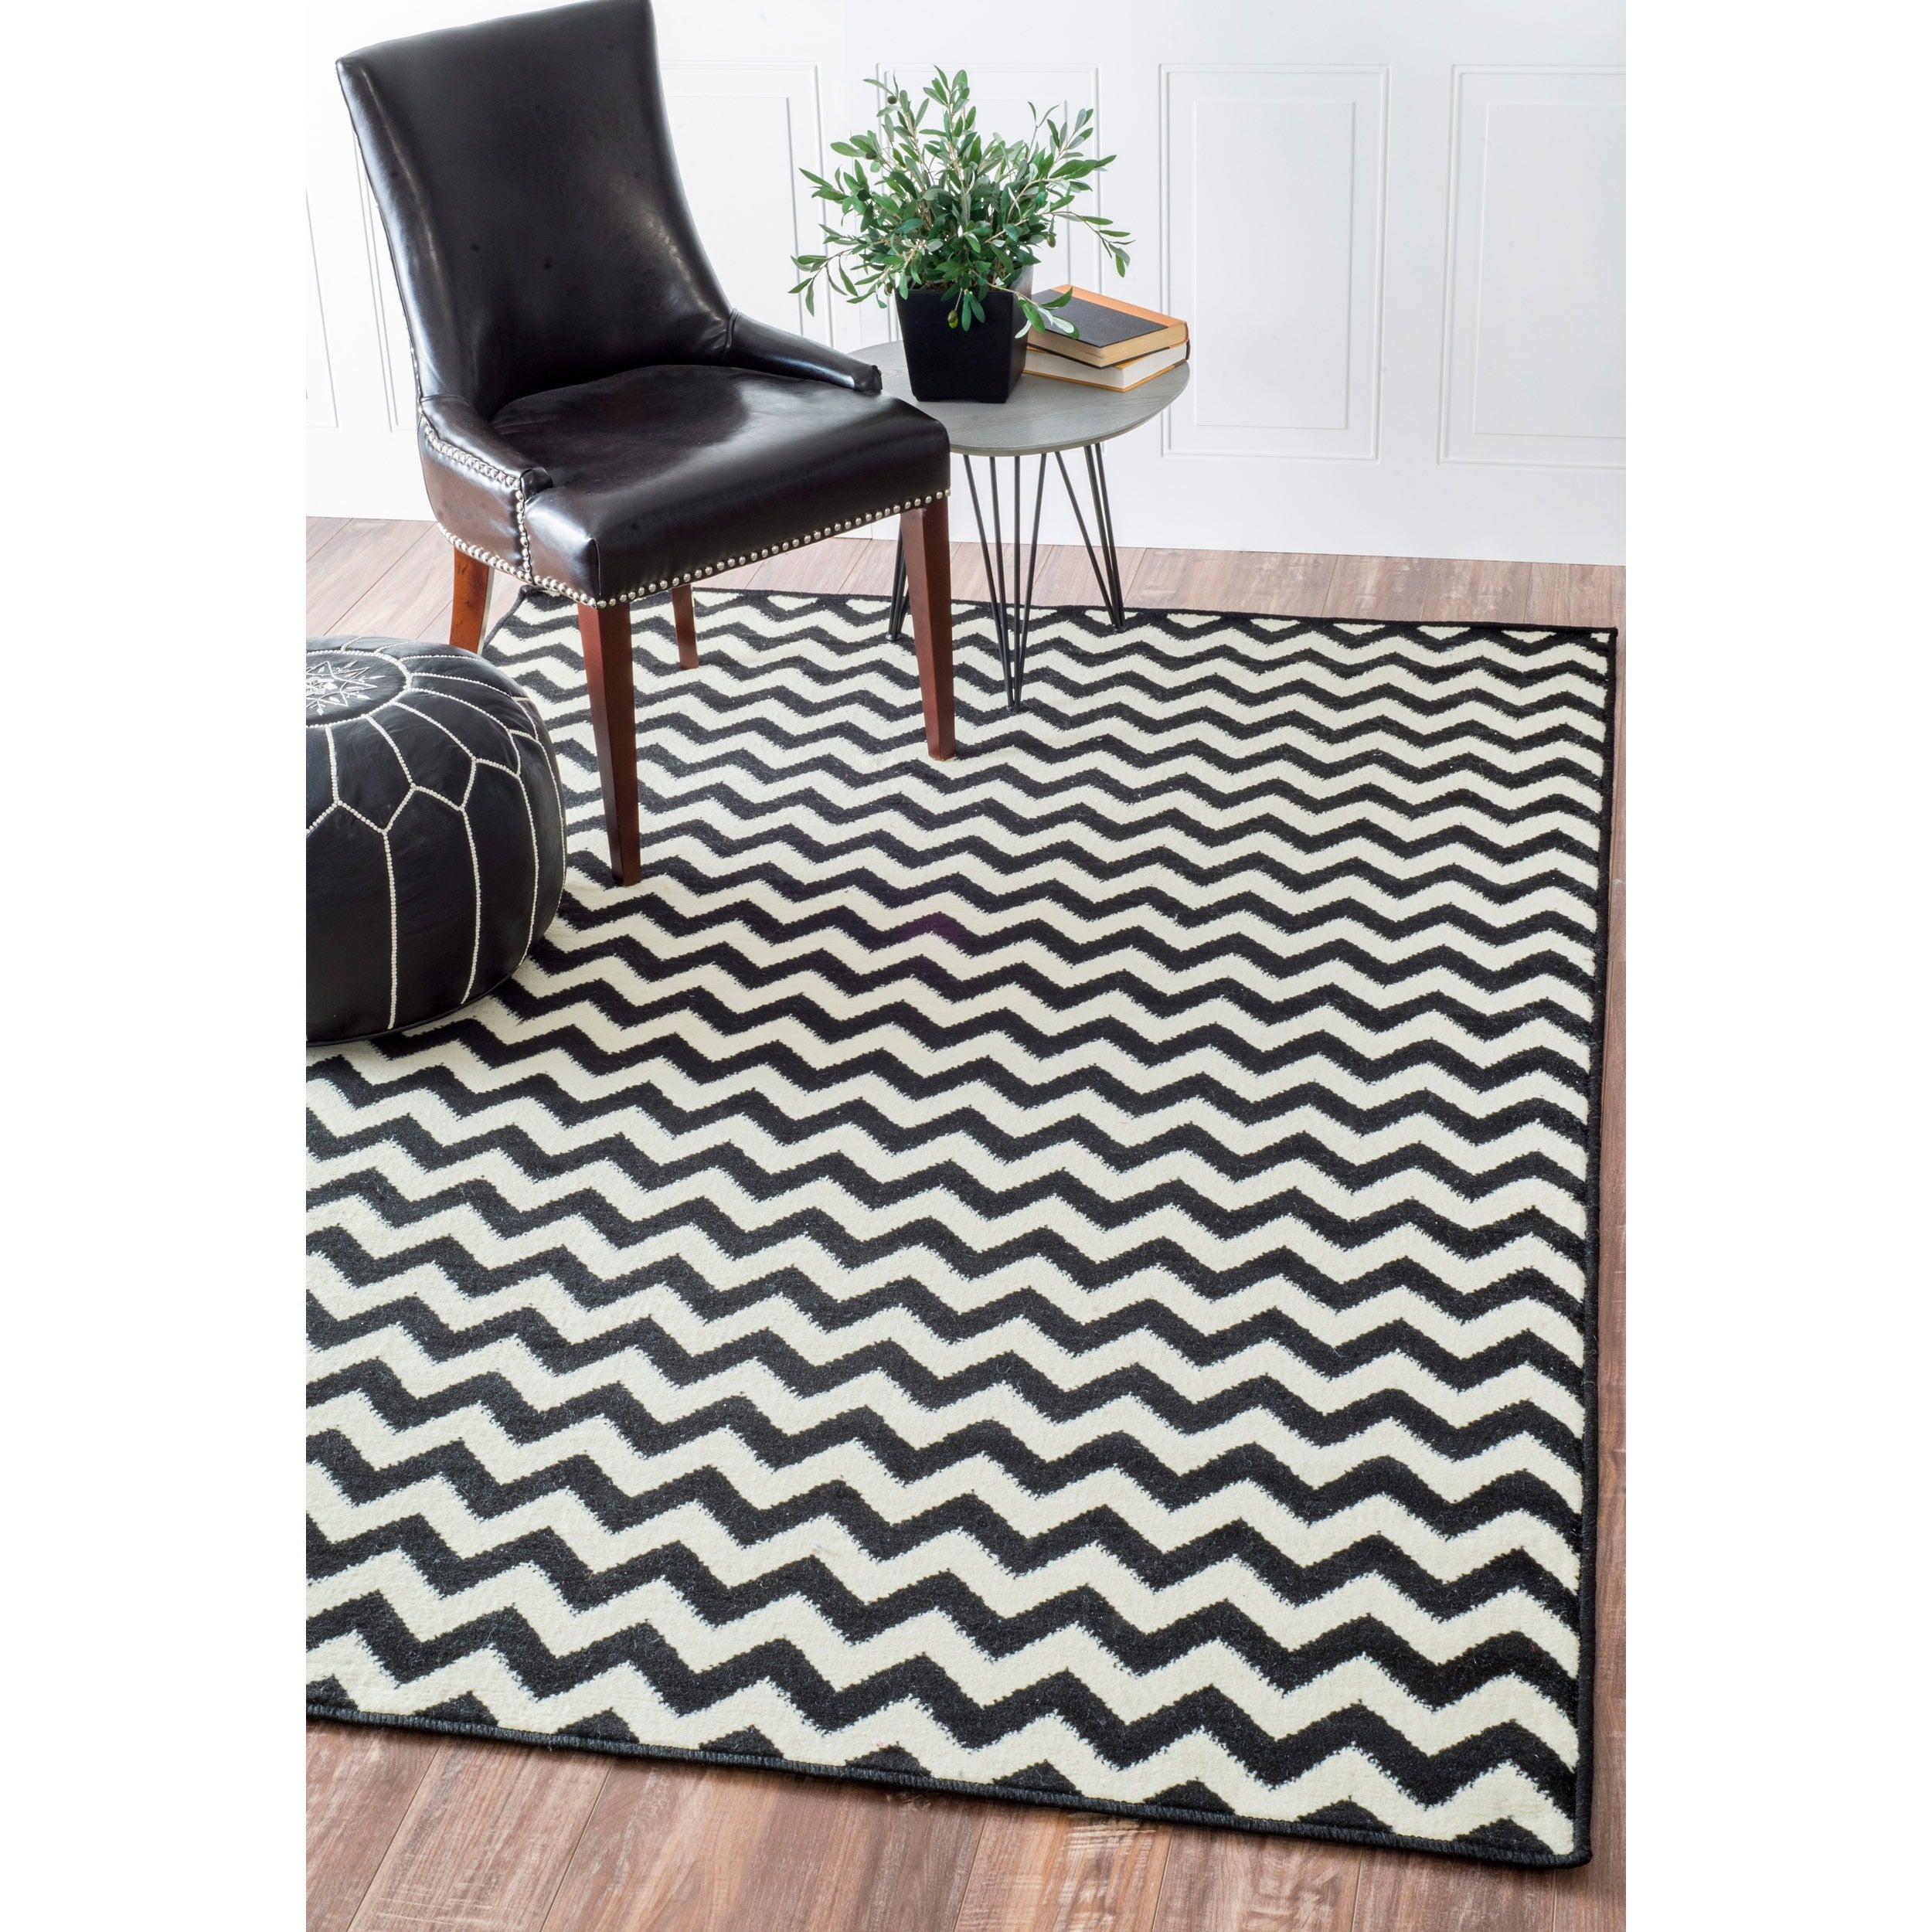 Williamsburg Bedford Chevron Zebra Black/Ivory Rug (4' x 6')